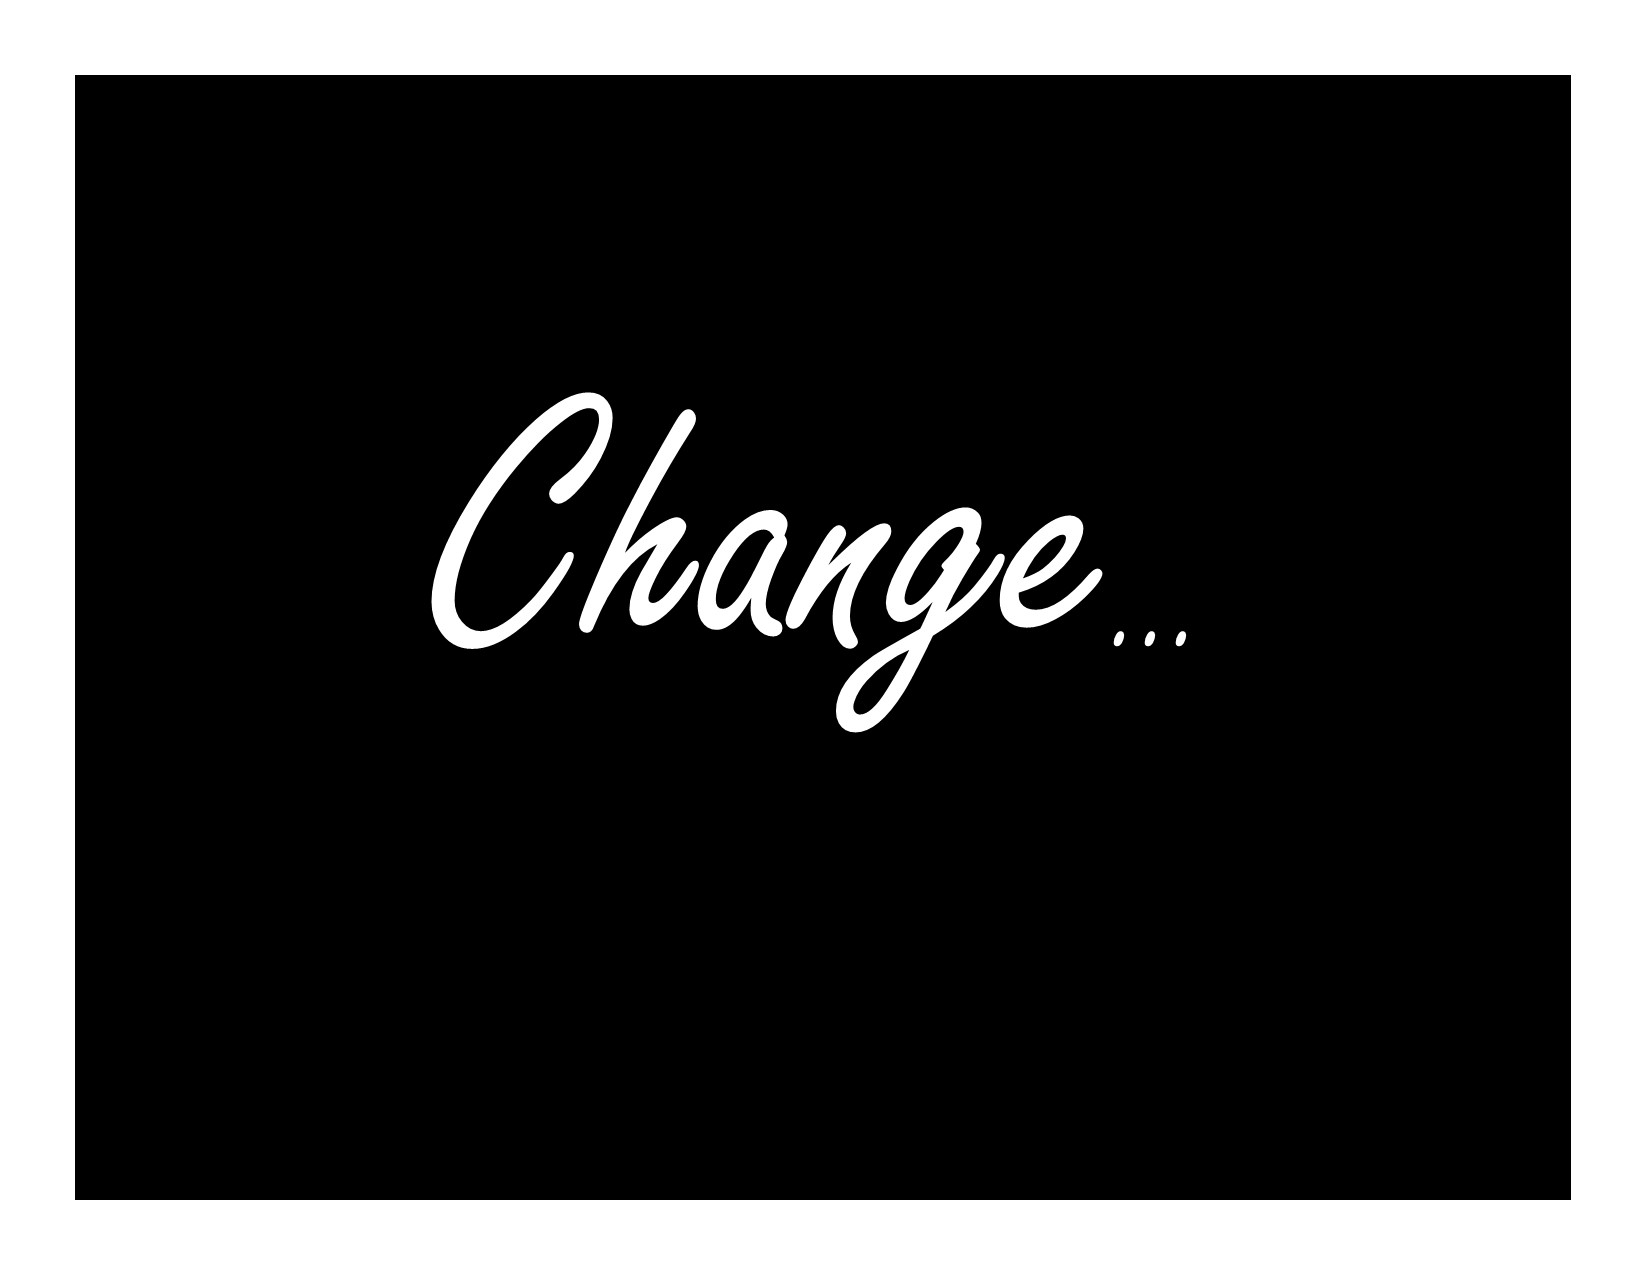 """There has got to be a change in order for us to be the change. In this series we are looking at where we were, where we are and where we are going to see just how much of """"Change"""" God is actually capable of!   November 1st - 15th 2015"""